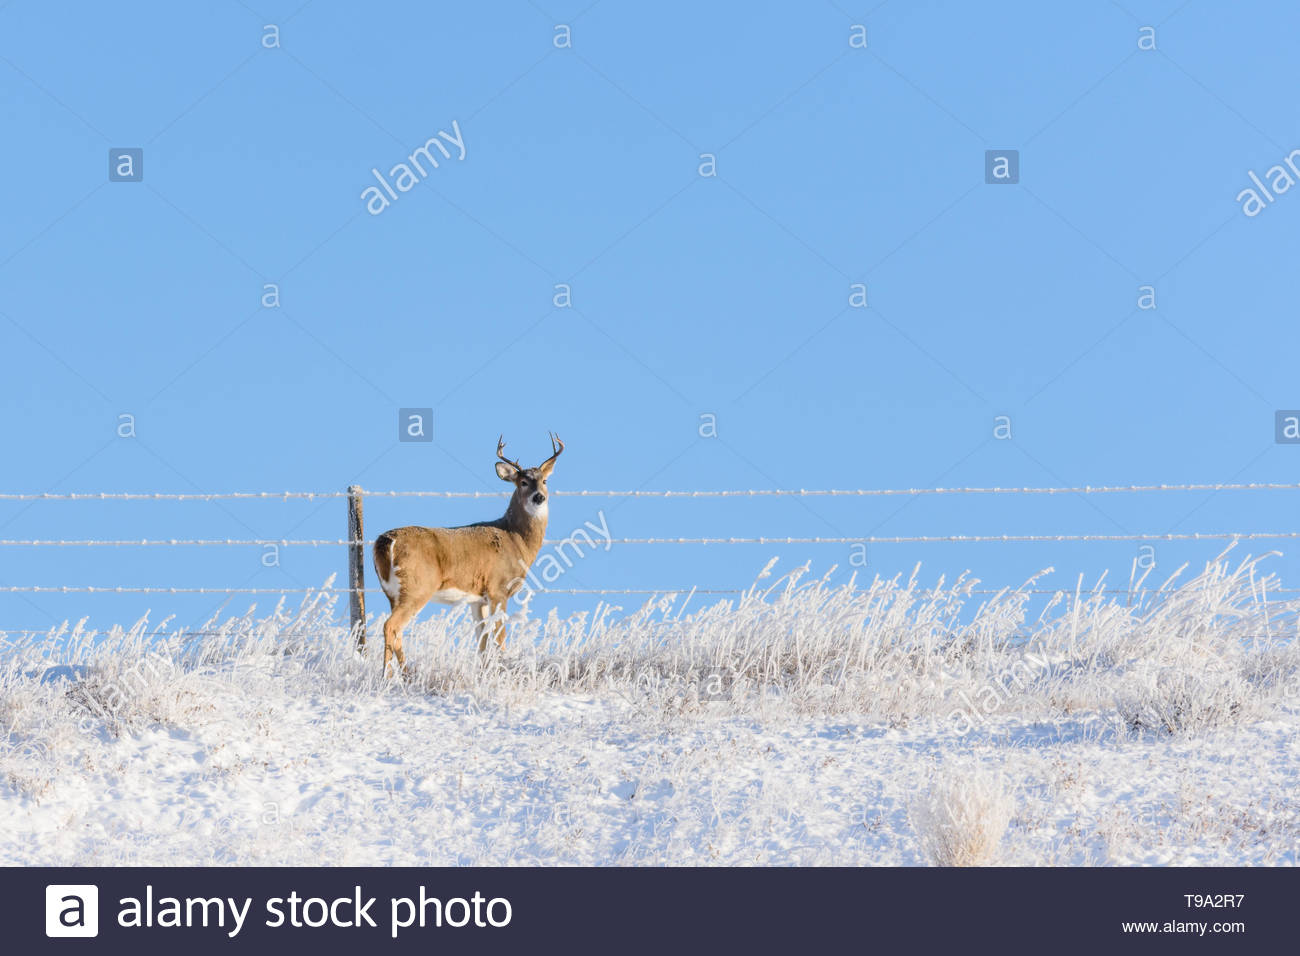 A frosty White Tailed Deer buck, Odocoileus virginianus, standing near a barbed wire fence in a field on a cold morning with heavy hoar frost. Stock Photo